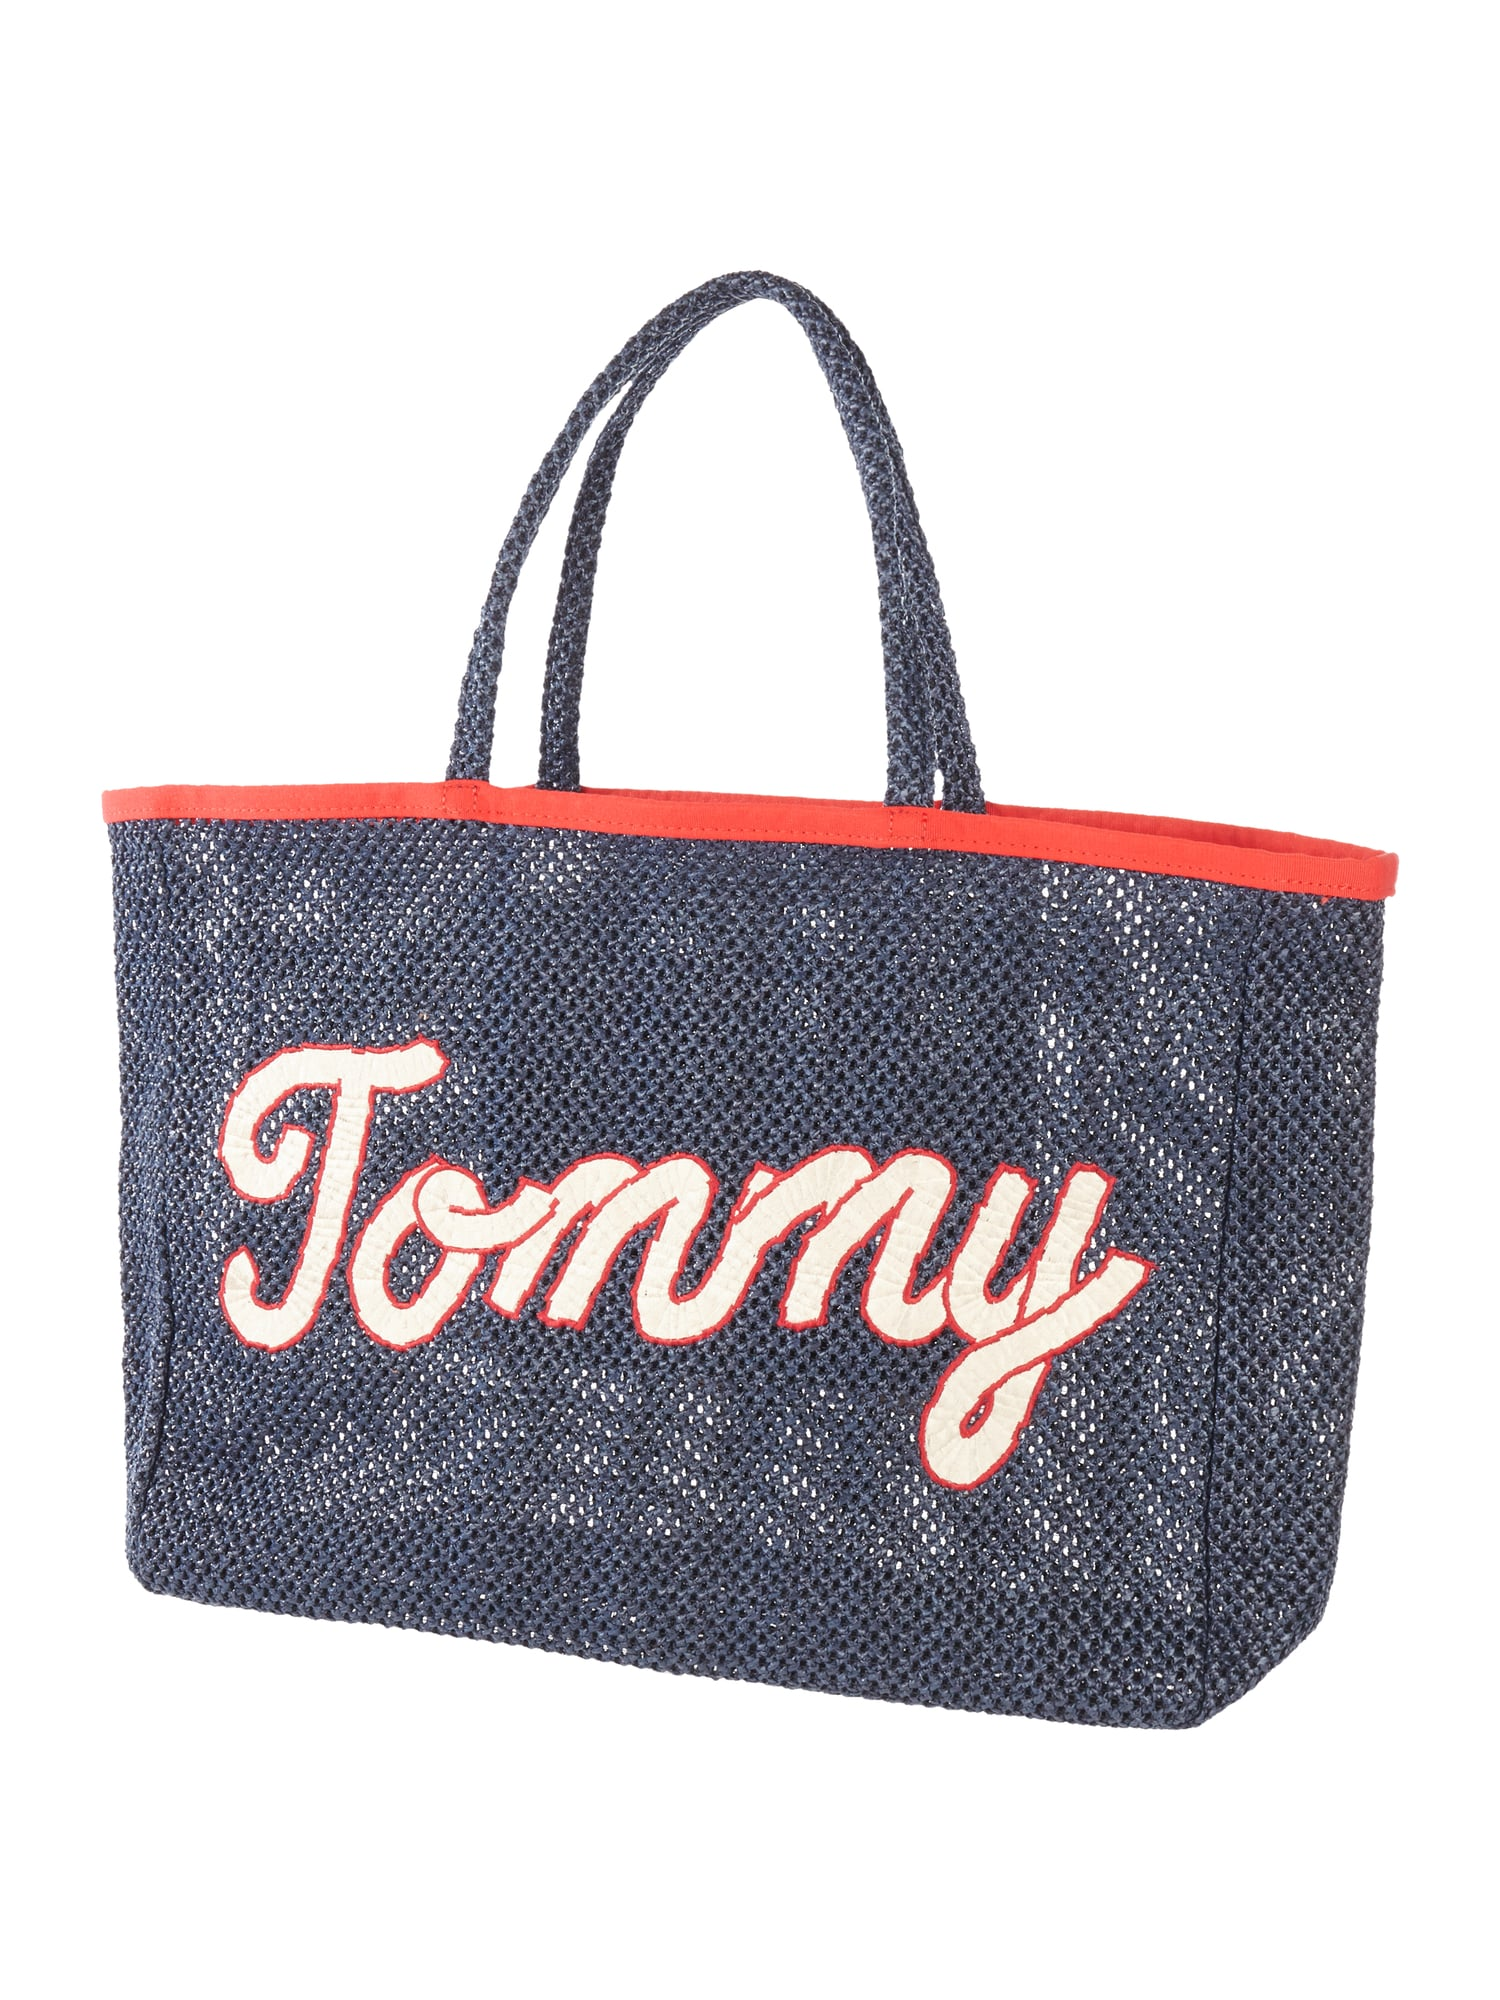 tommy hilfiger strandtasche mit logo aufn her in blau. Black Bedroom Furniture Sets. Home Design Ideas